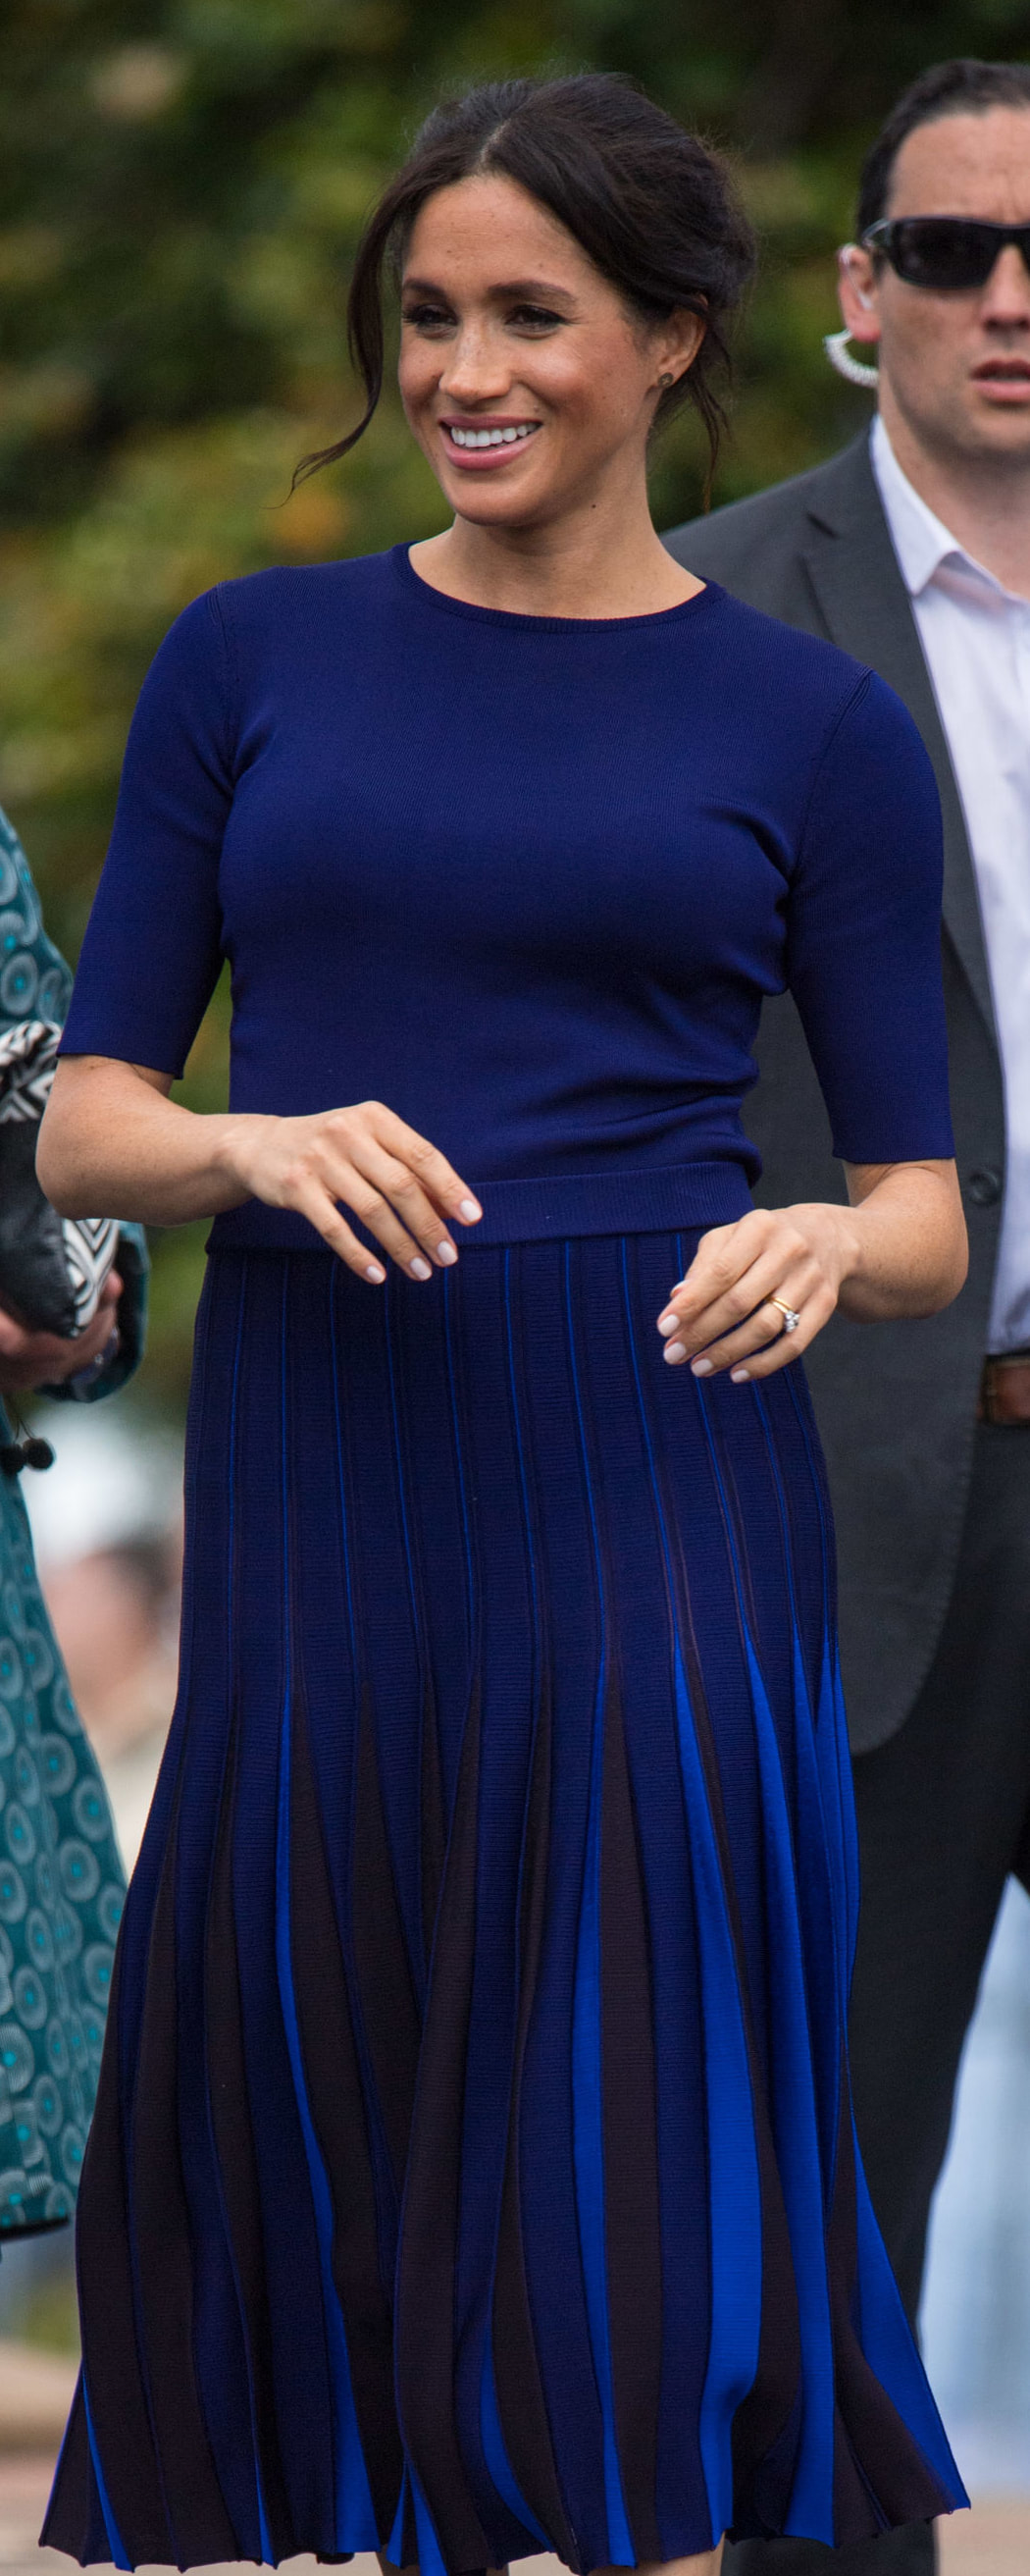 Givenchy Indigo Crew Neck Knit Top as seen on Meghan Markle, the Duchess of Sussex